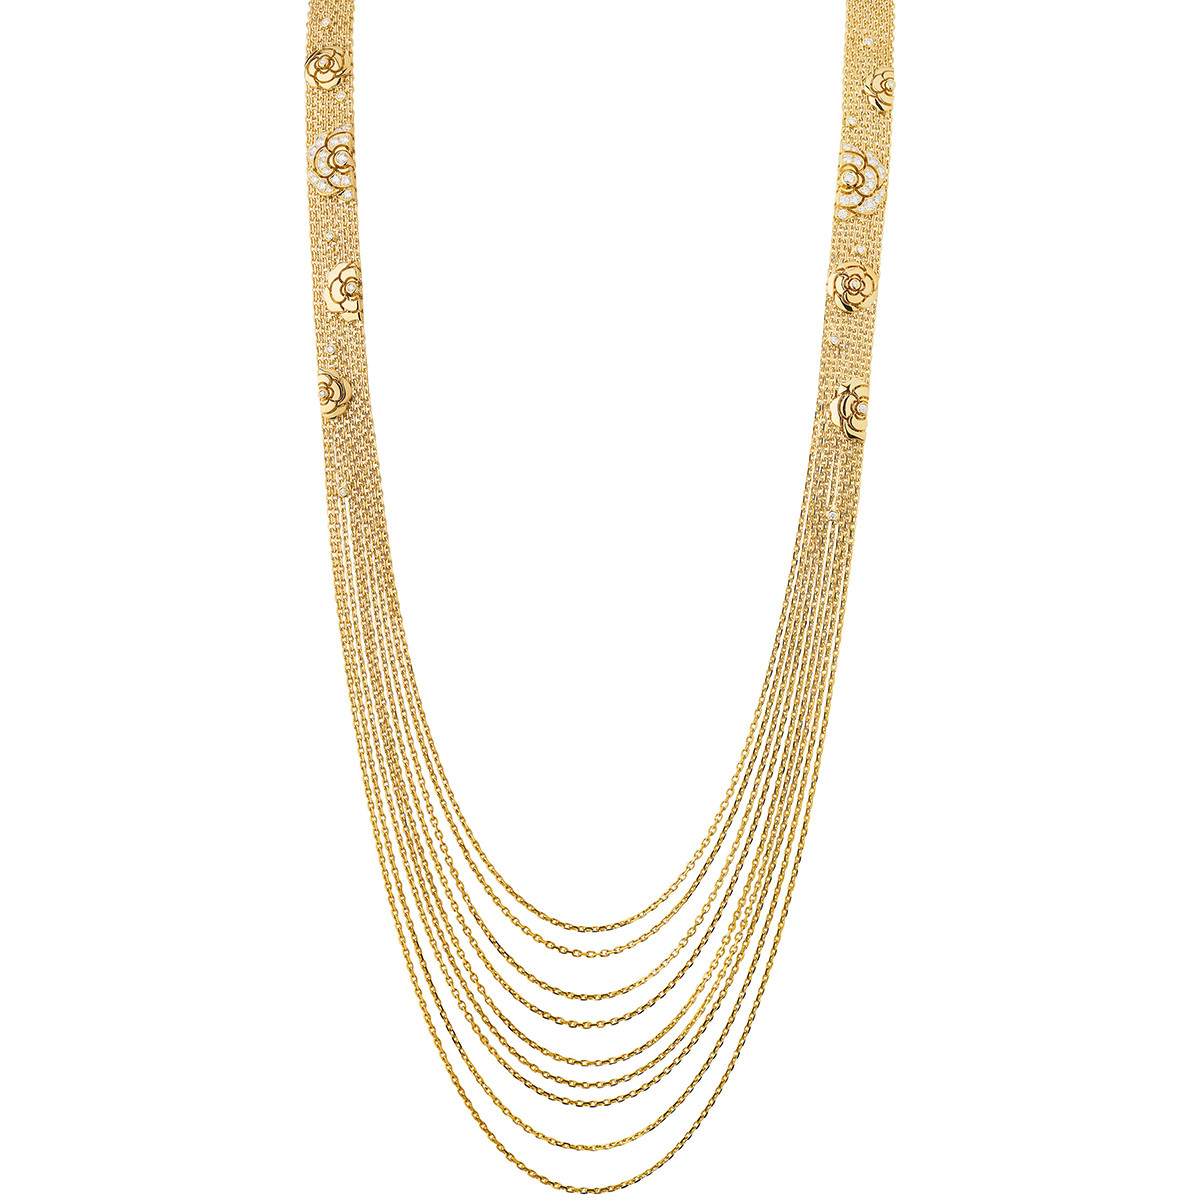 18k Yellow Gold & Diamond Camélia Sautoir Necklace